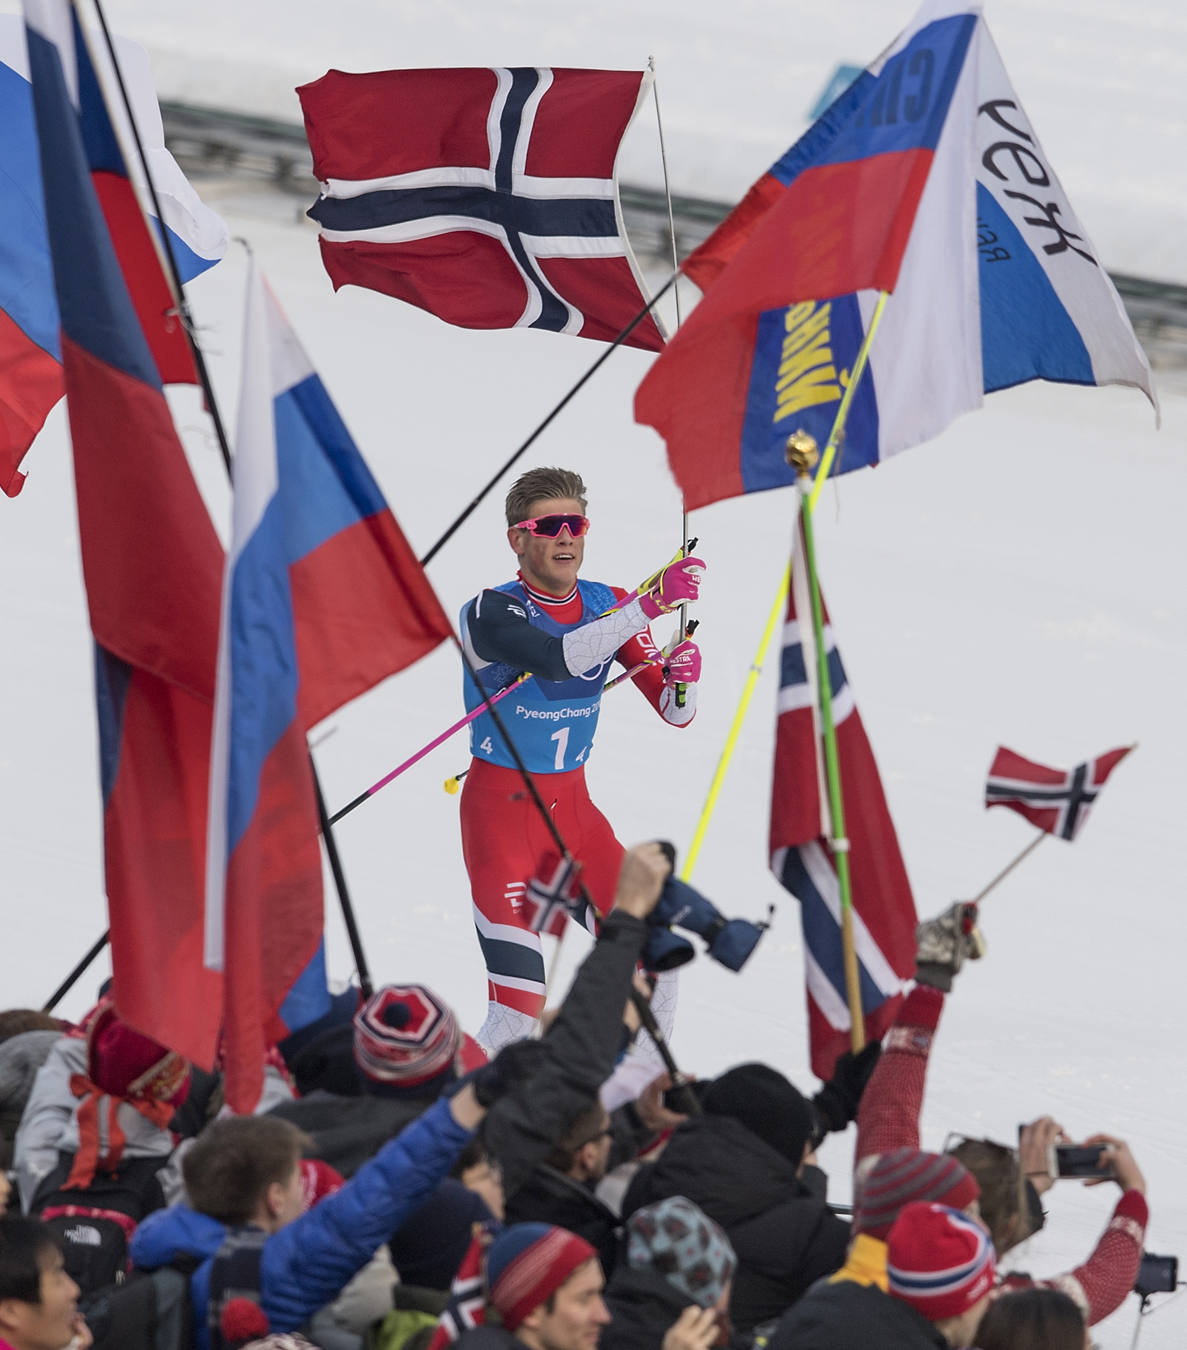 Johannes Hoesflot Klaebo (NOR) first place, with flag on the finishline, Cross-Country Skiing, Men's 4 x 10km Relay, Alpensia Cross-Country Skiing Centre on February 12, 2018 during the PyeongChang 2018 Winter Olympic Games. Nikon D5 | AF-S NIKKOR 400mm f/2.8E FL ED VR | ISO 250 | 1/1600 s | f/4.0 Photo by Anke Wälischmiller/ FOTOAGENTUR SVEN SIMON